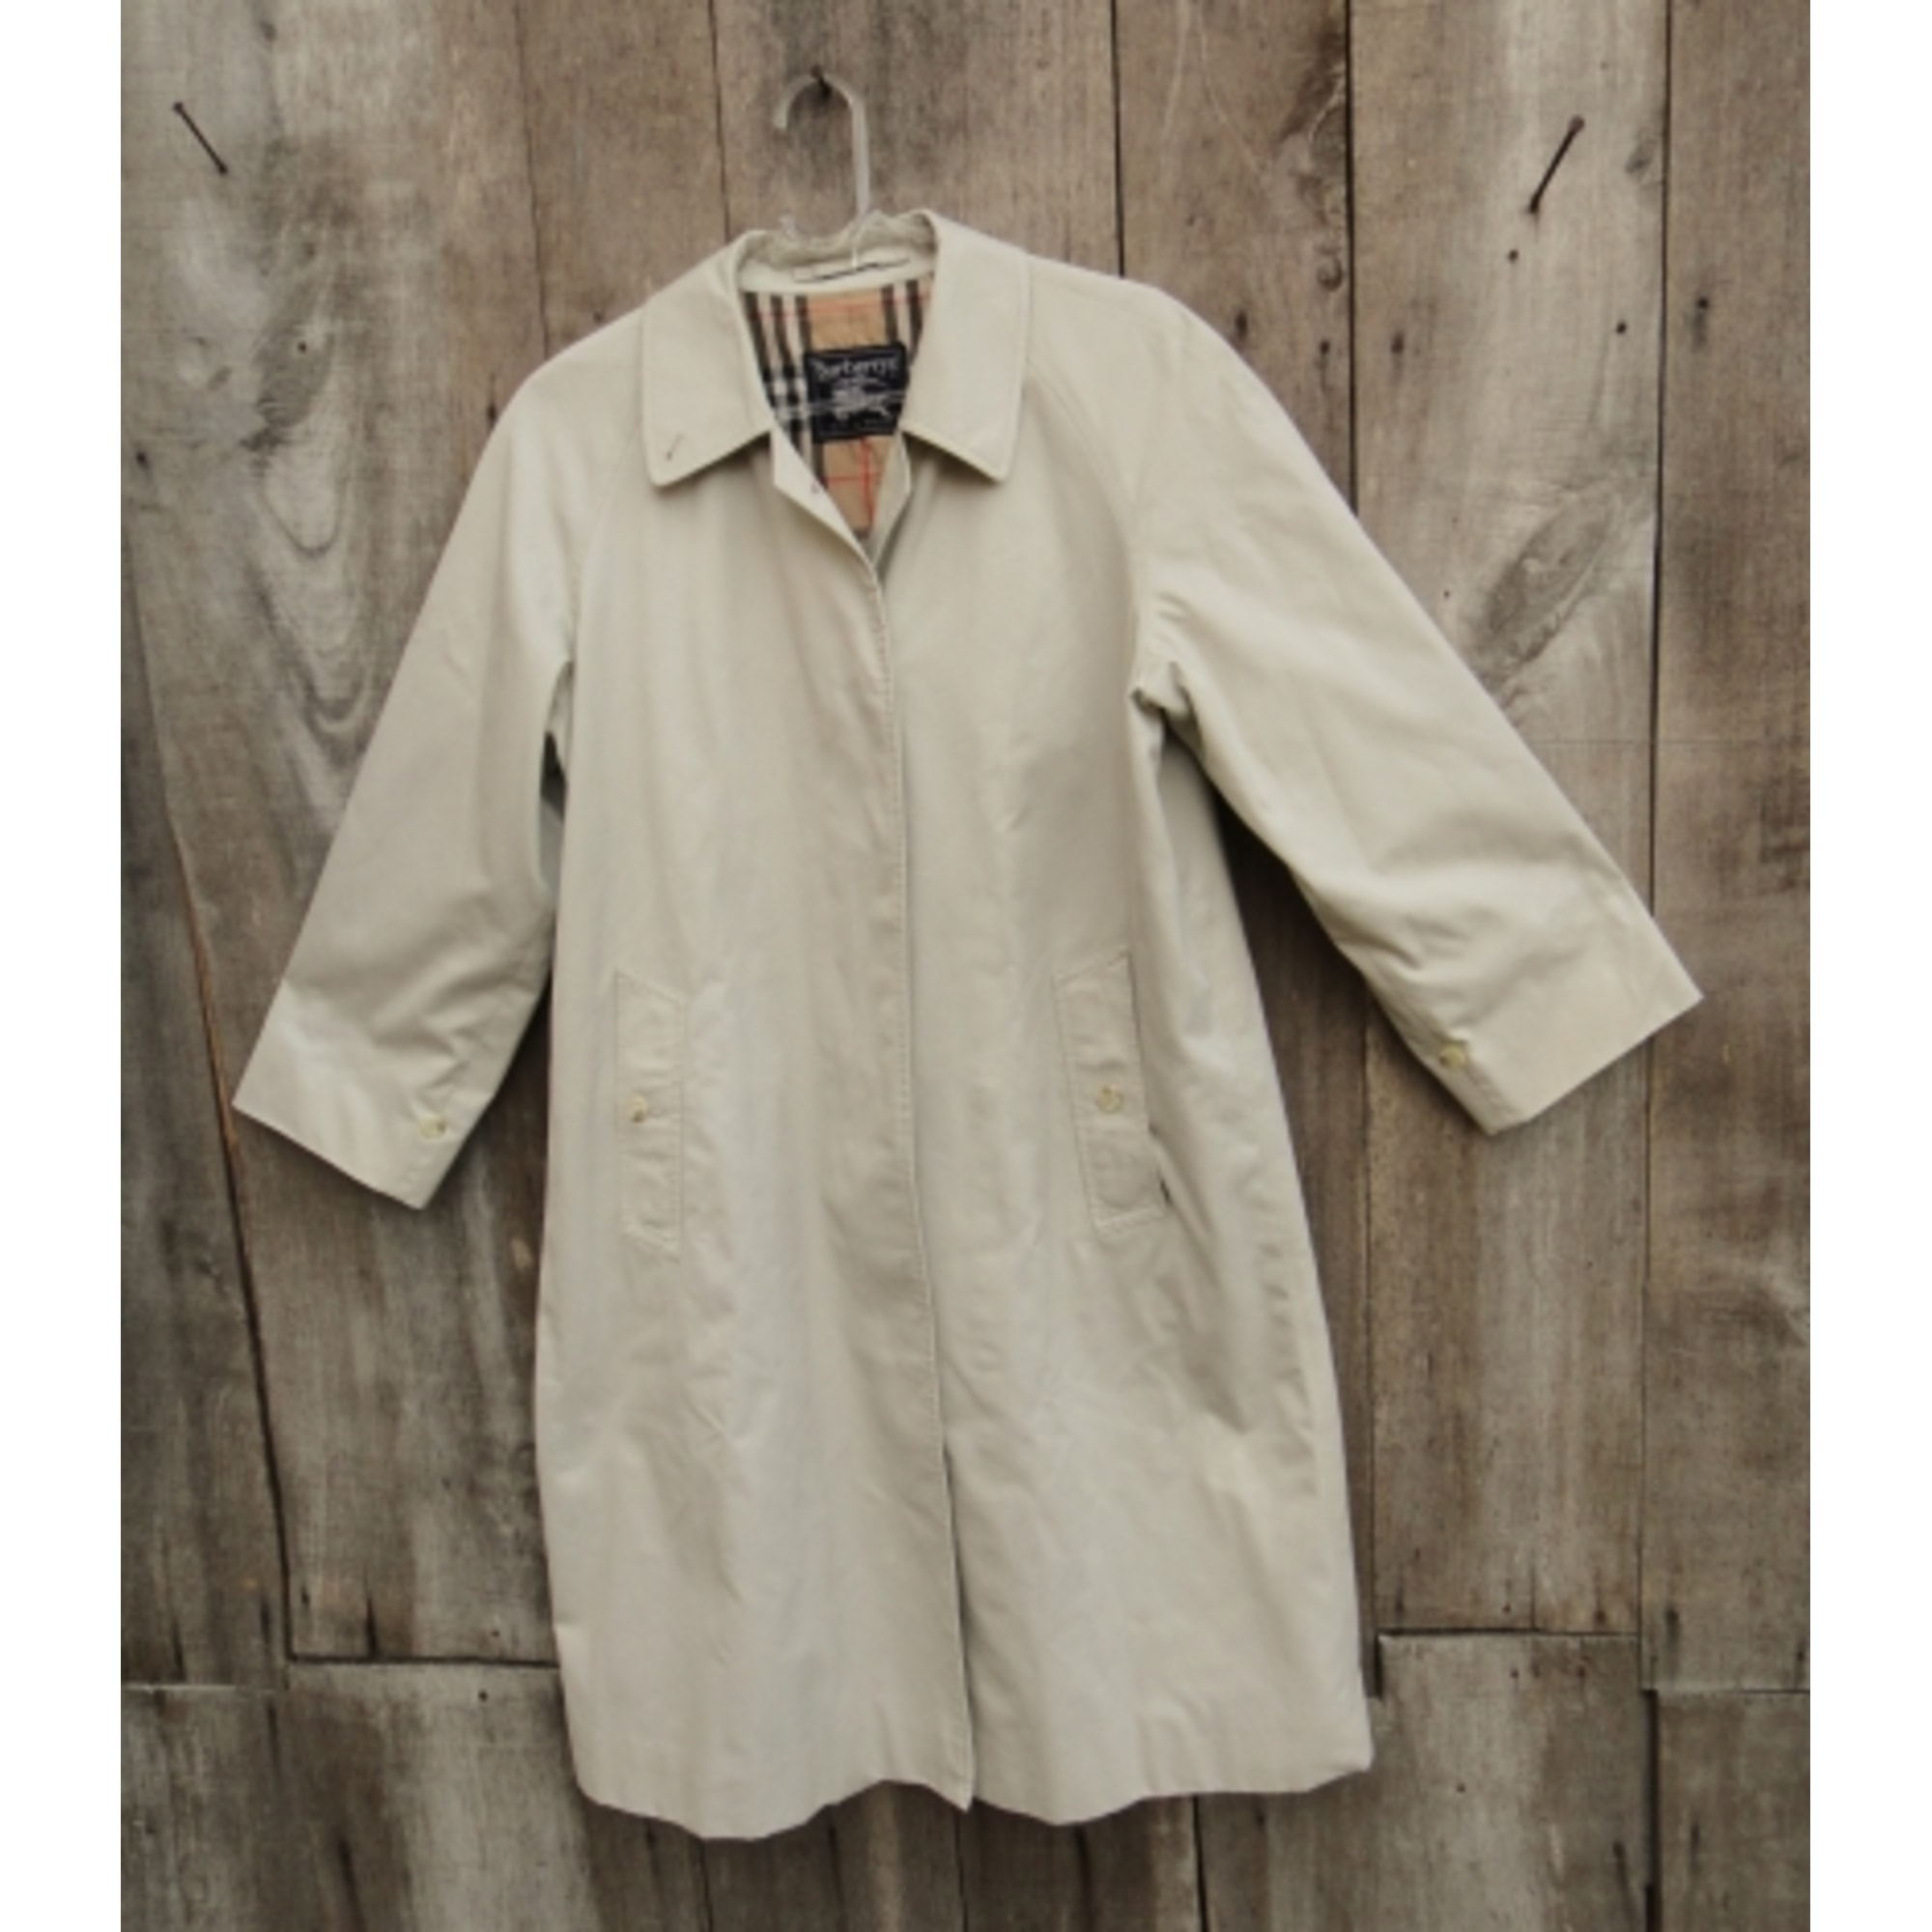 00d29f119c3ab1 Imperméable, trench BURBERRY 40 (L, T3) beige - 7447013